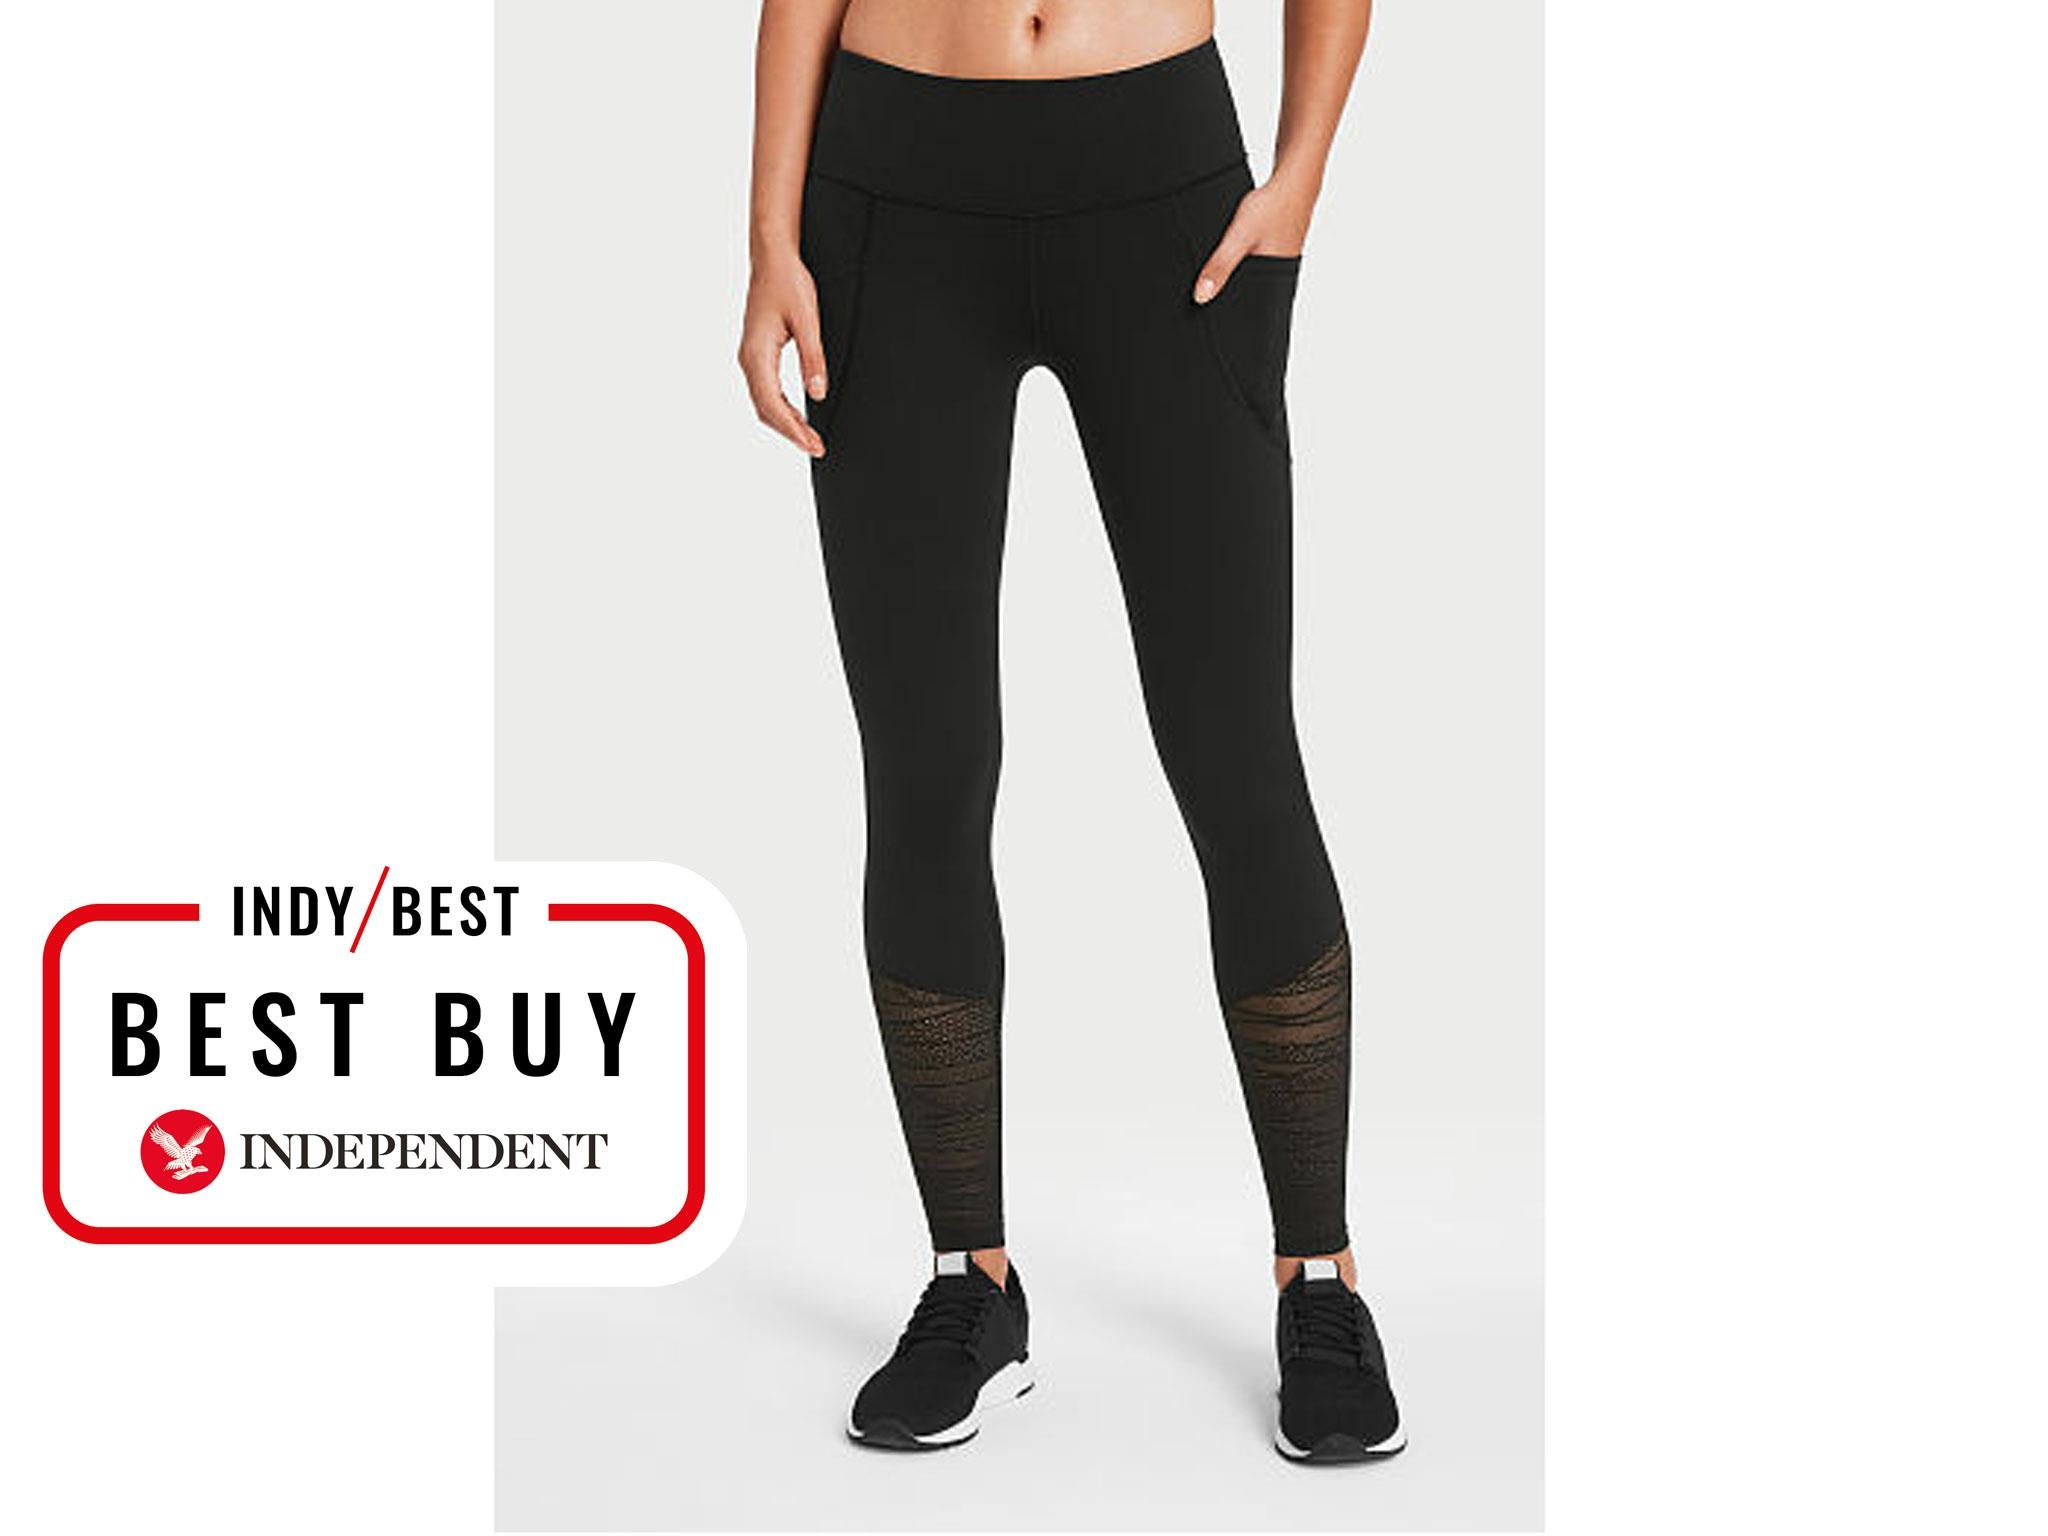 307459f7b1432 10 best women's gym leggings | The Independent